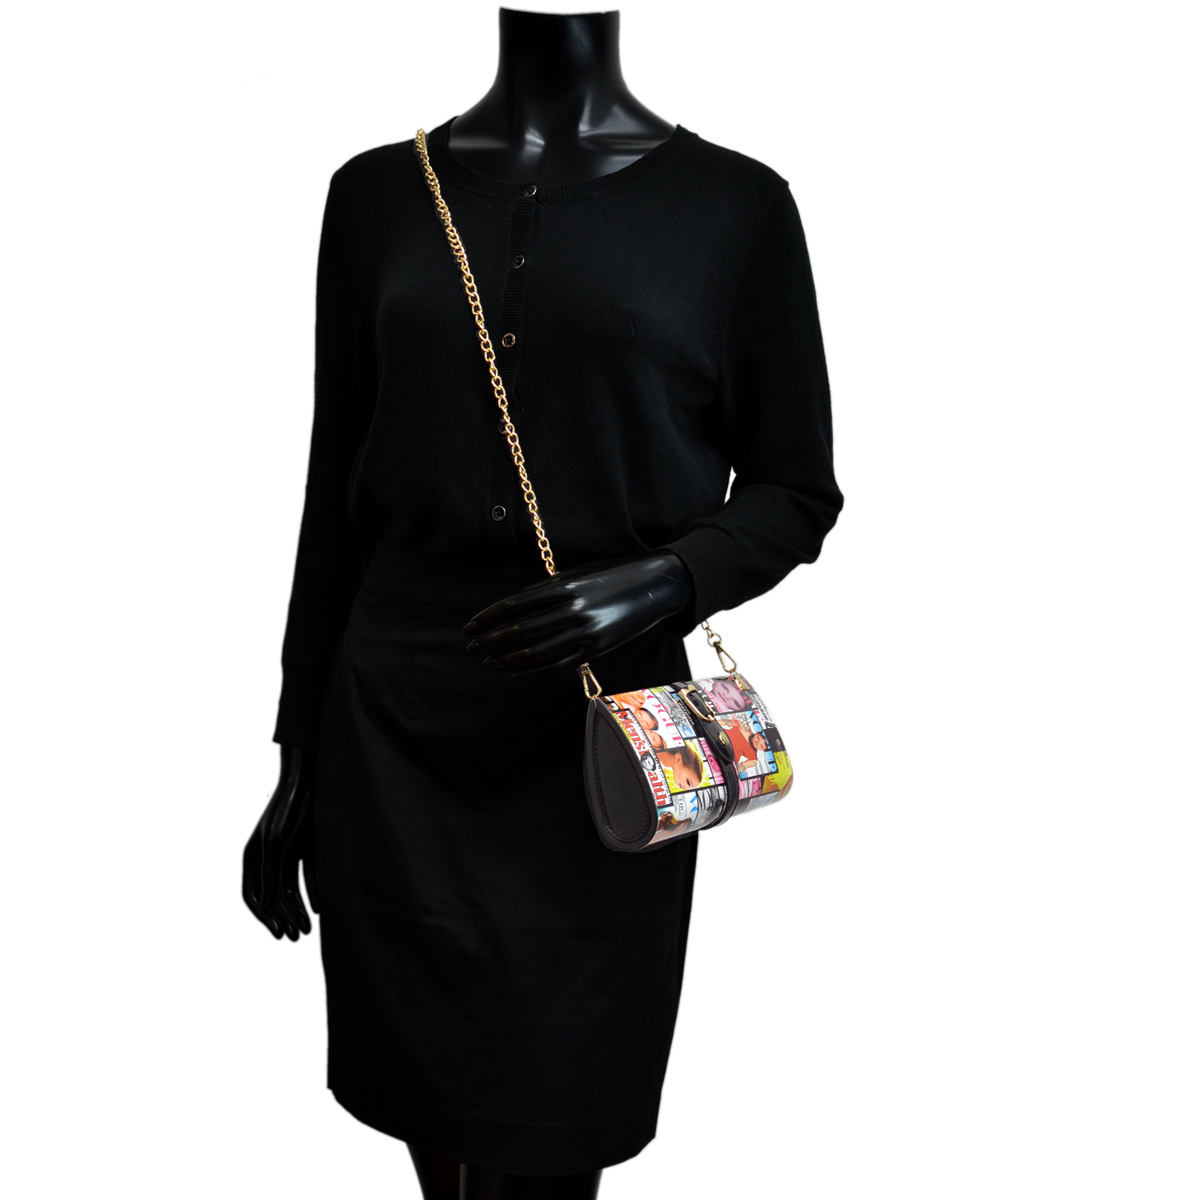 Magazine Clutch with Detachable Chain Strap